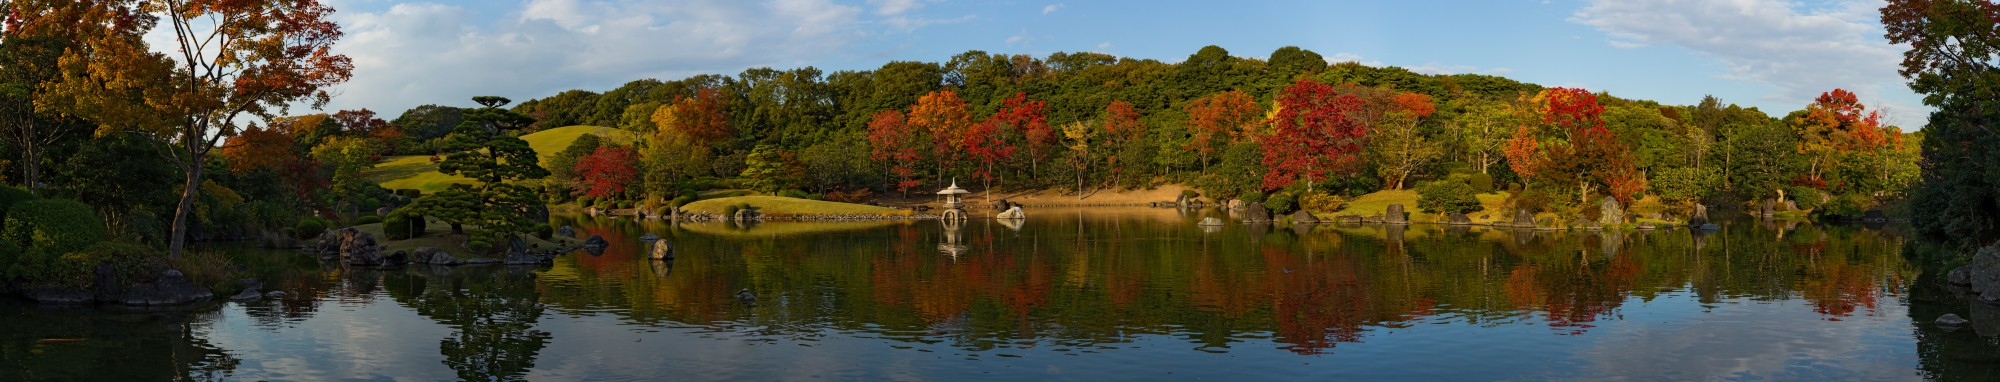 Scenery of Shinji pond at Expo'70 Commemorative Park, November 2015, Osaka II